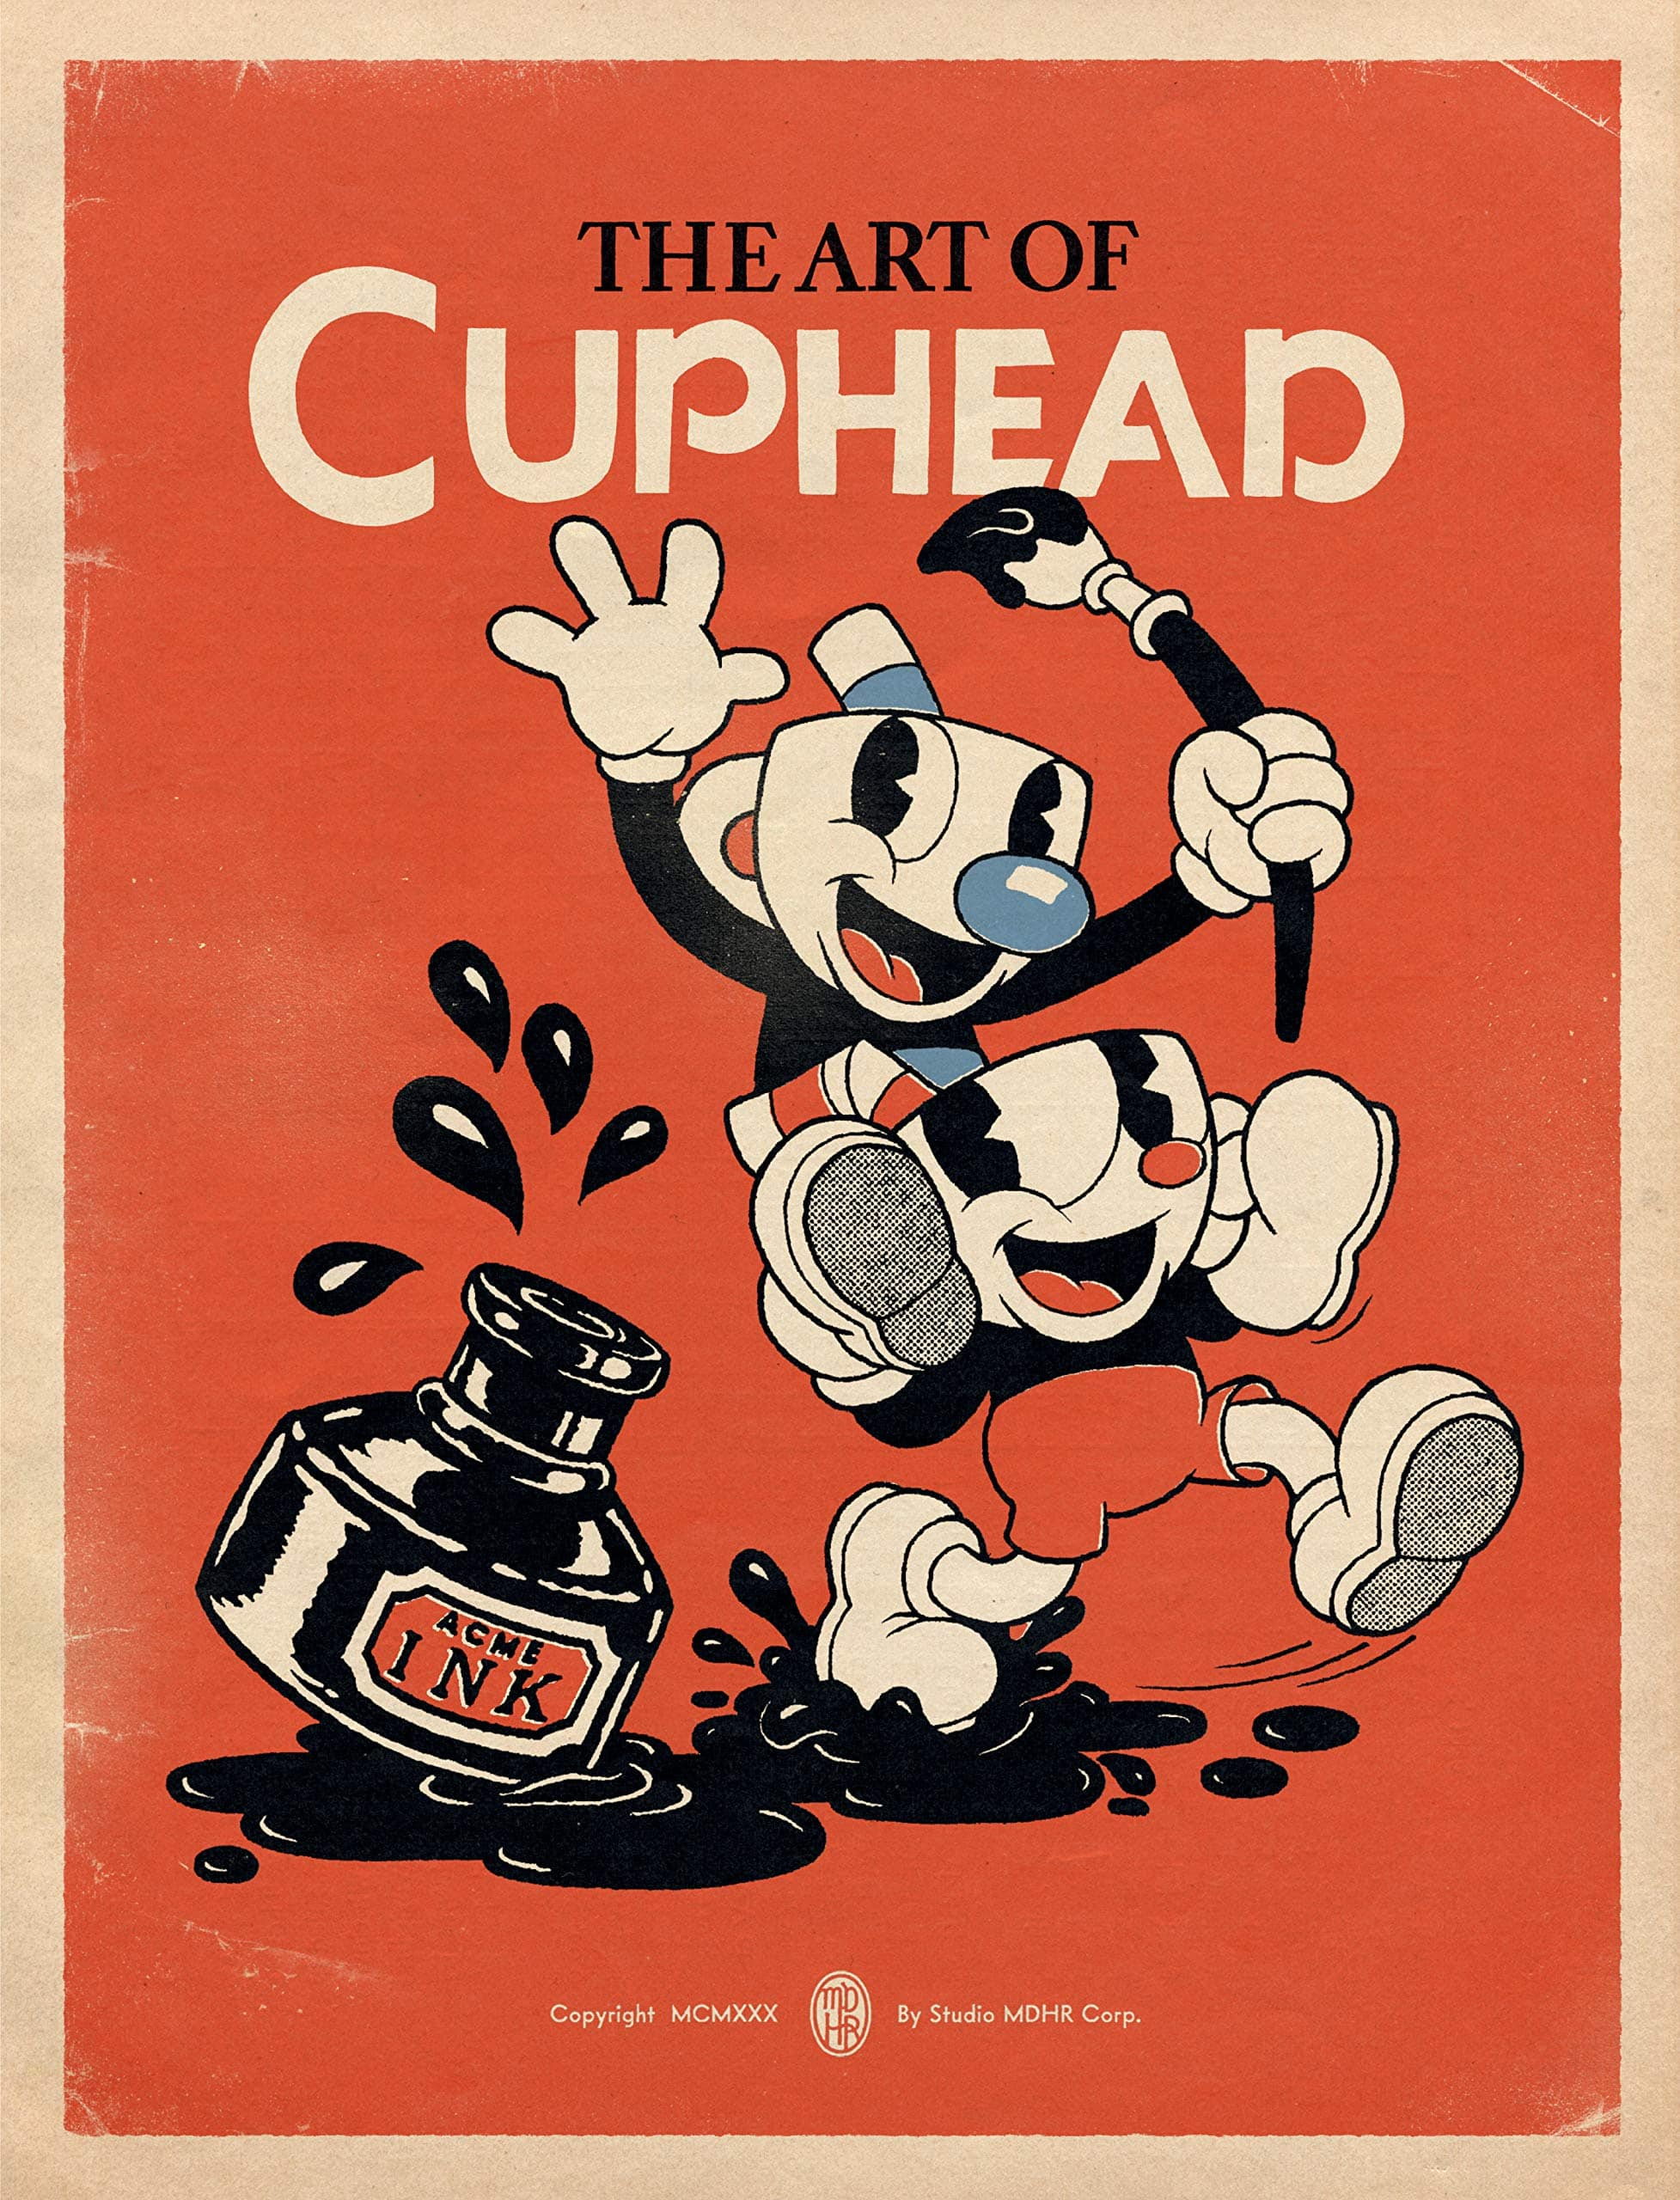 The Art of Cuphead Pre-Purchase (Hardcover Book; 264 Pages) $19.49 via Amazon